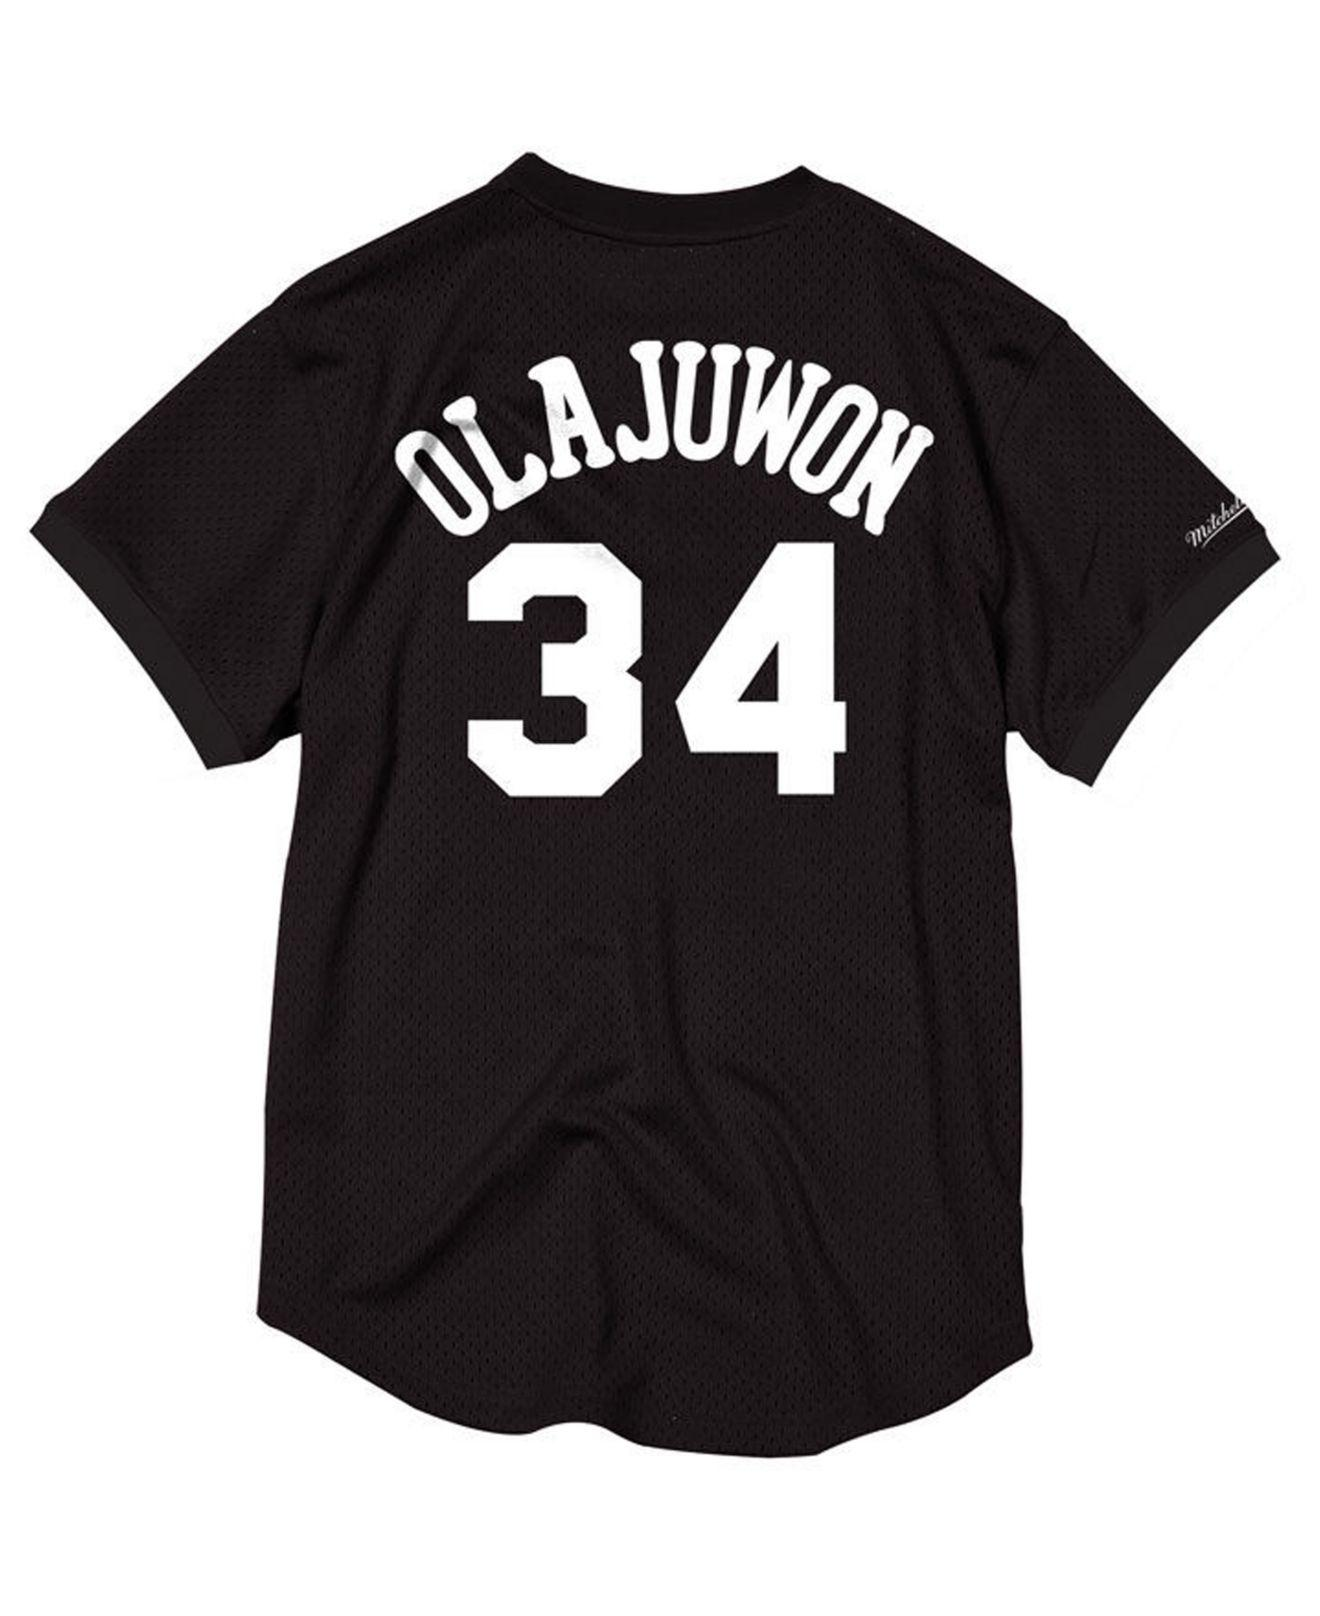 low priced e843d d3a81 Mitchell & Ness Hakeem Olajuwon Houston Rockets Black & White Mesh Name And  Number Crew Neck Jersey for men